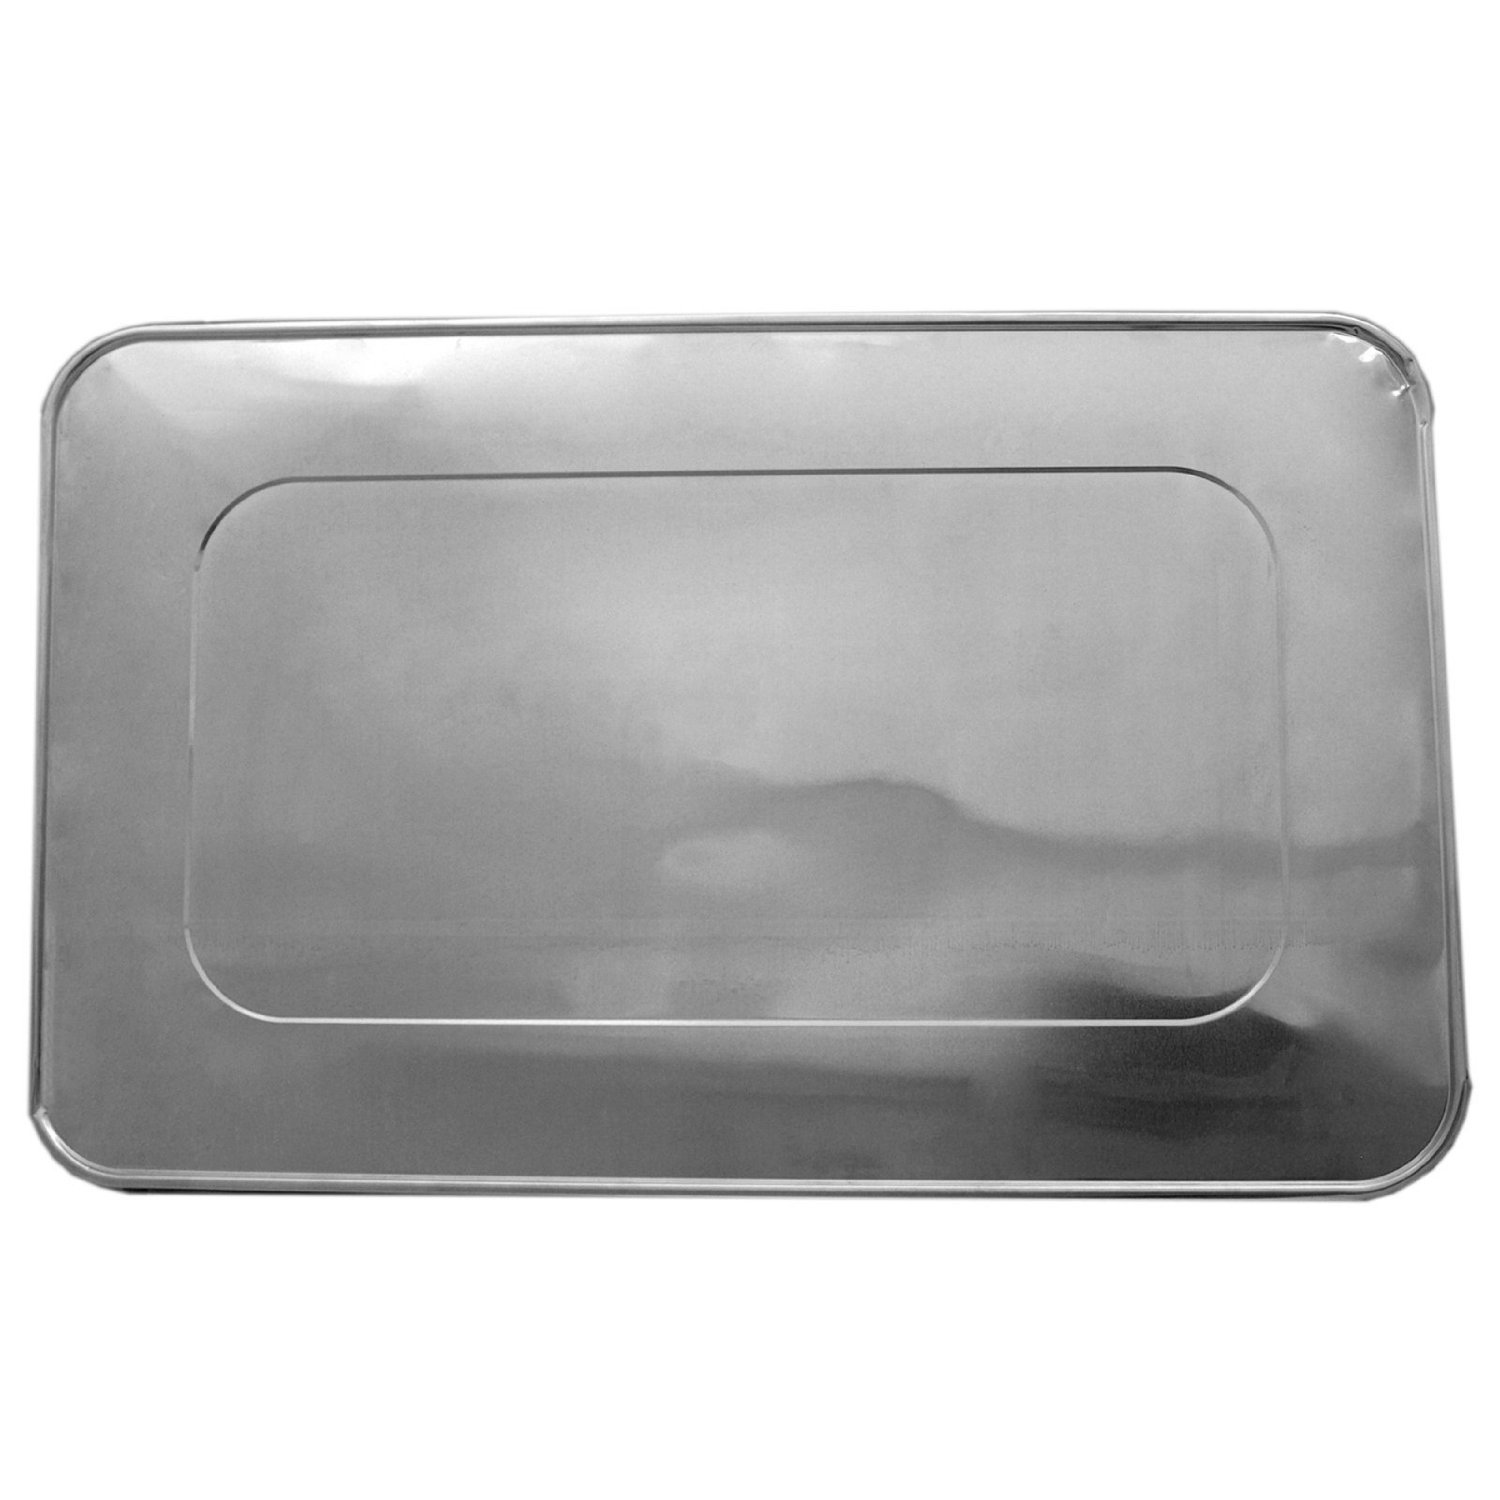 TigerChef TC-20557 Durable Full Size Steam Table Deep Aluminum Pan with Aluminum Foil Lids, Multi-Purpose Disposable Pans with Covers, 21'' x 13'' Size (Pack of 100)